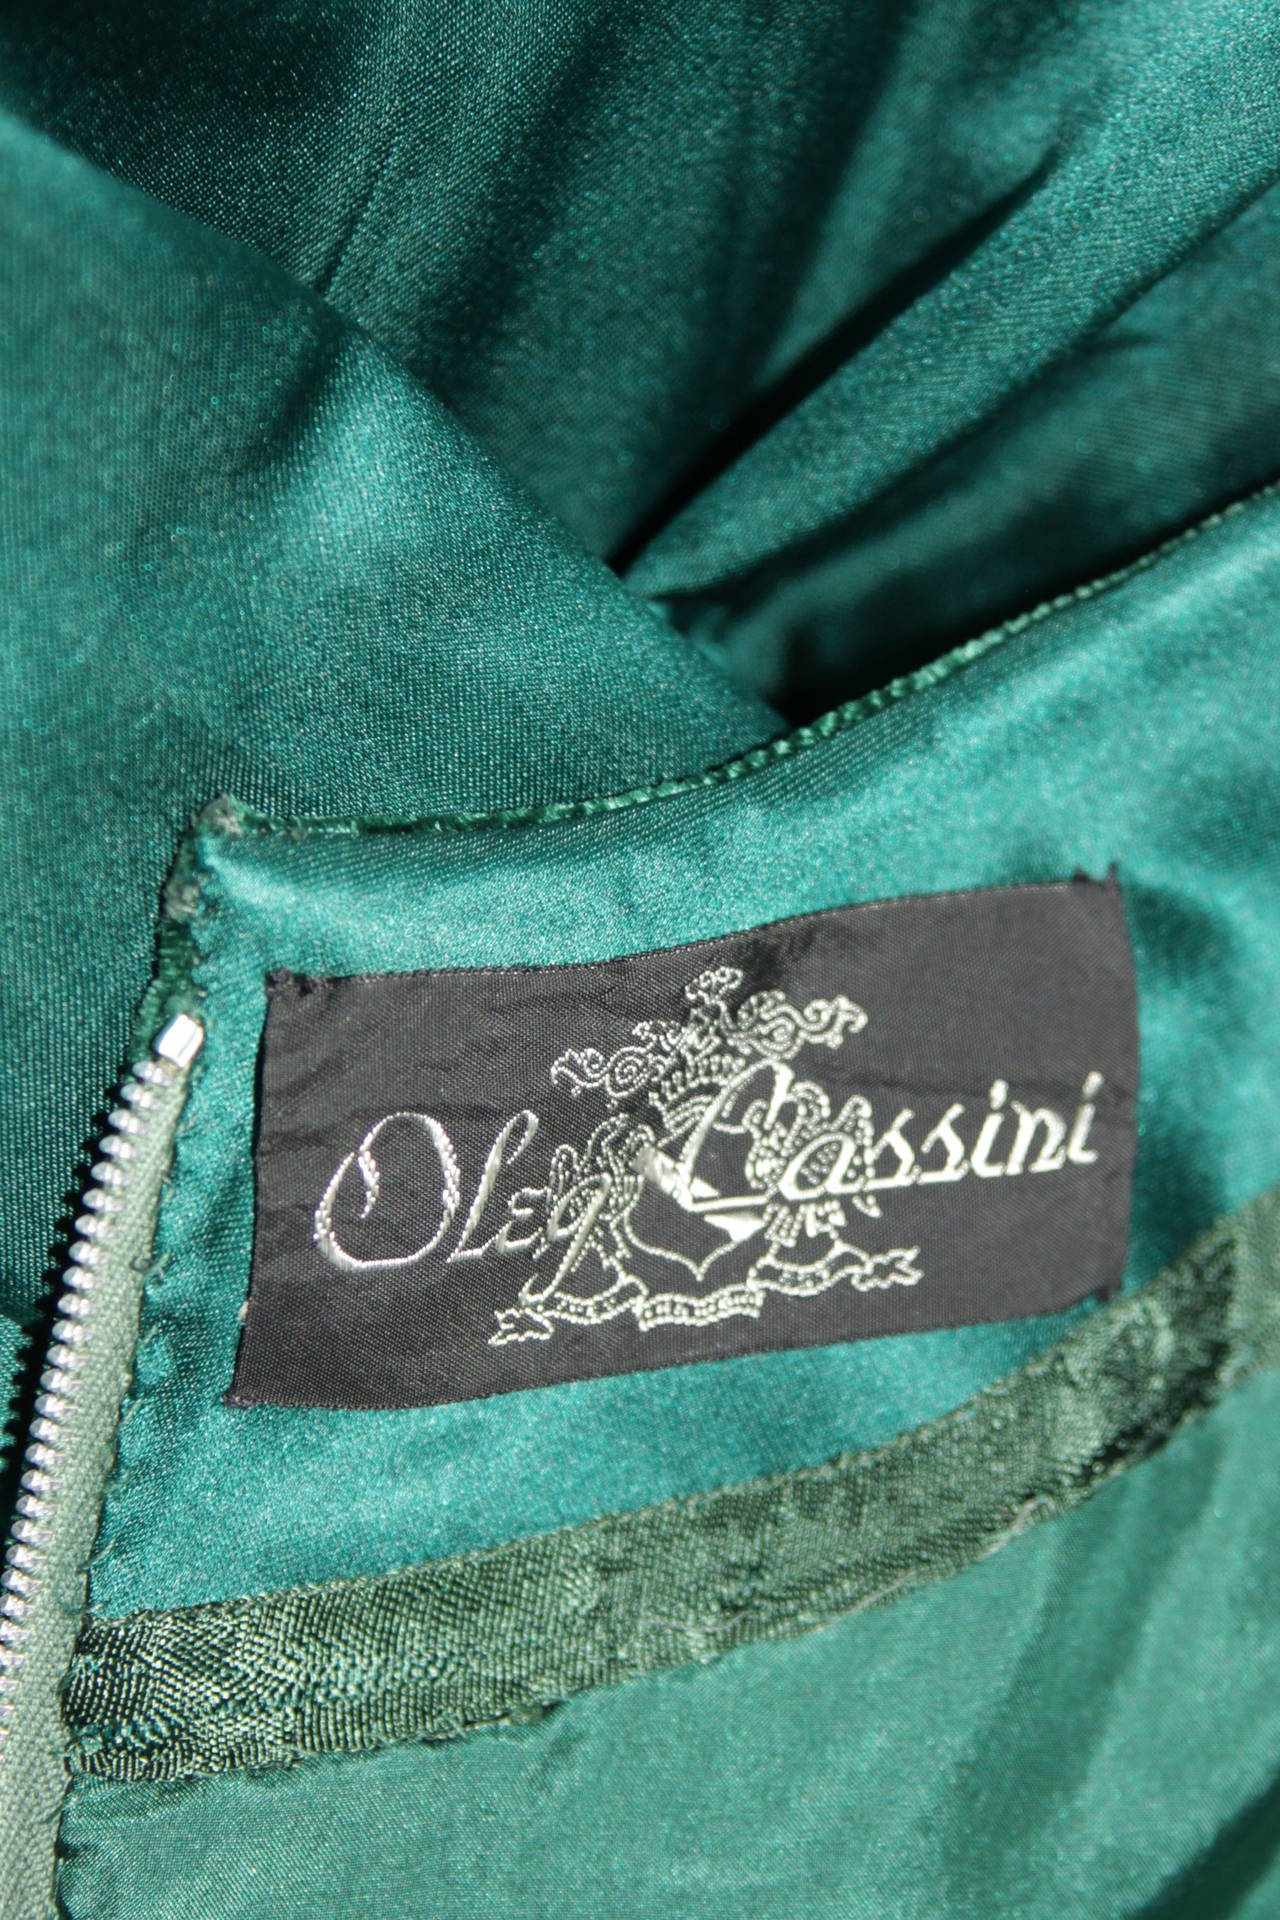 Oleg Cassini Emerald Silk and Velvet Applique Dress Size Small For Sale 4